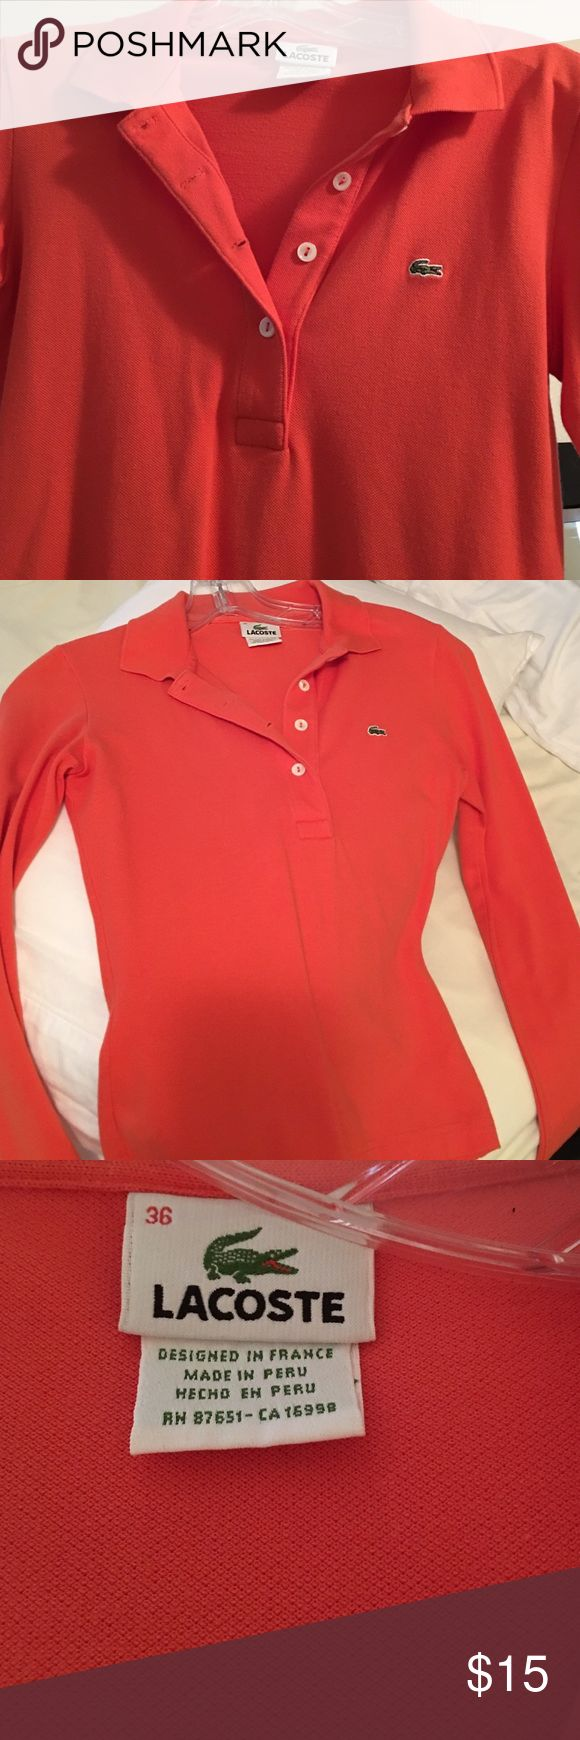 Lacoste long sleeve polo Lacoste polo size 36 which is a 2/4 in good condition Lacoste Tops Button Down Shirts